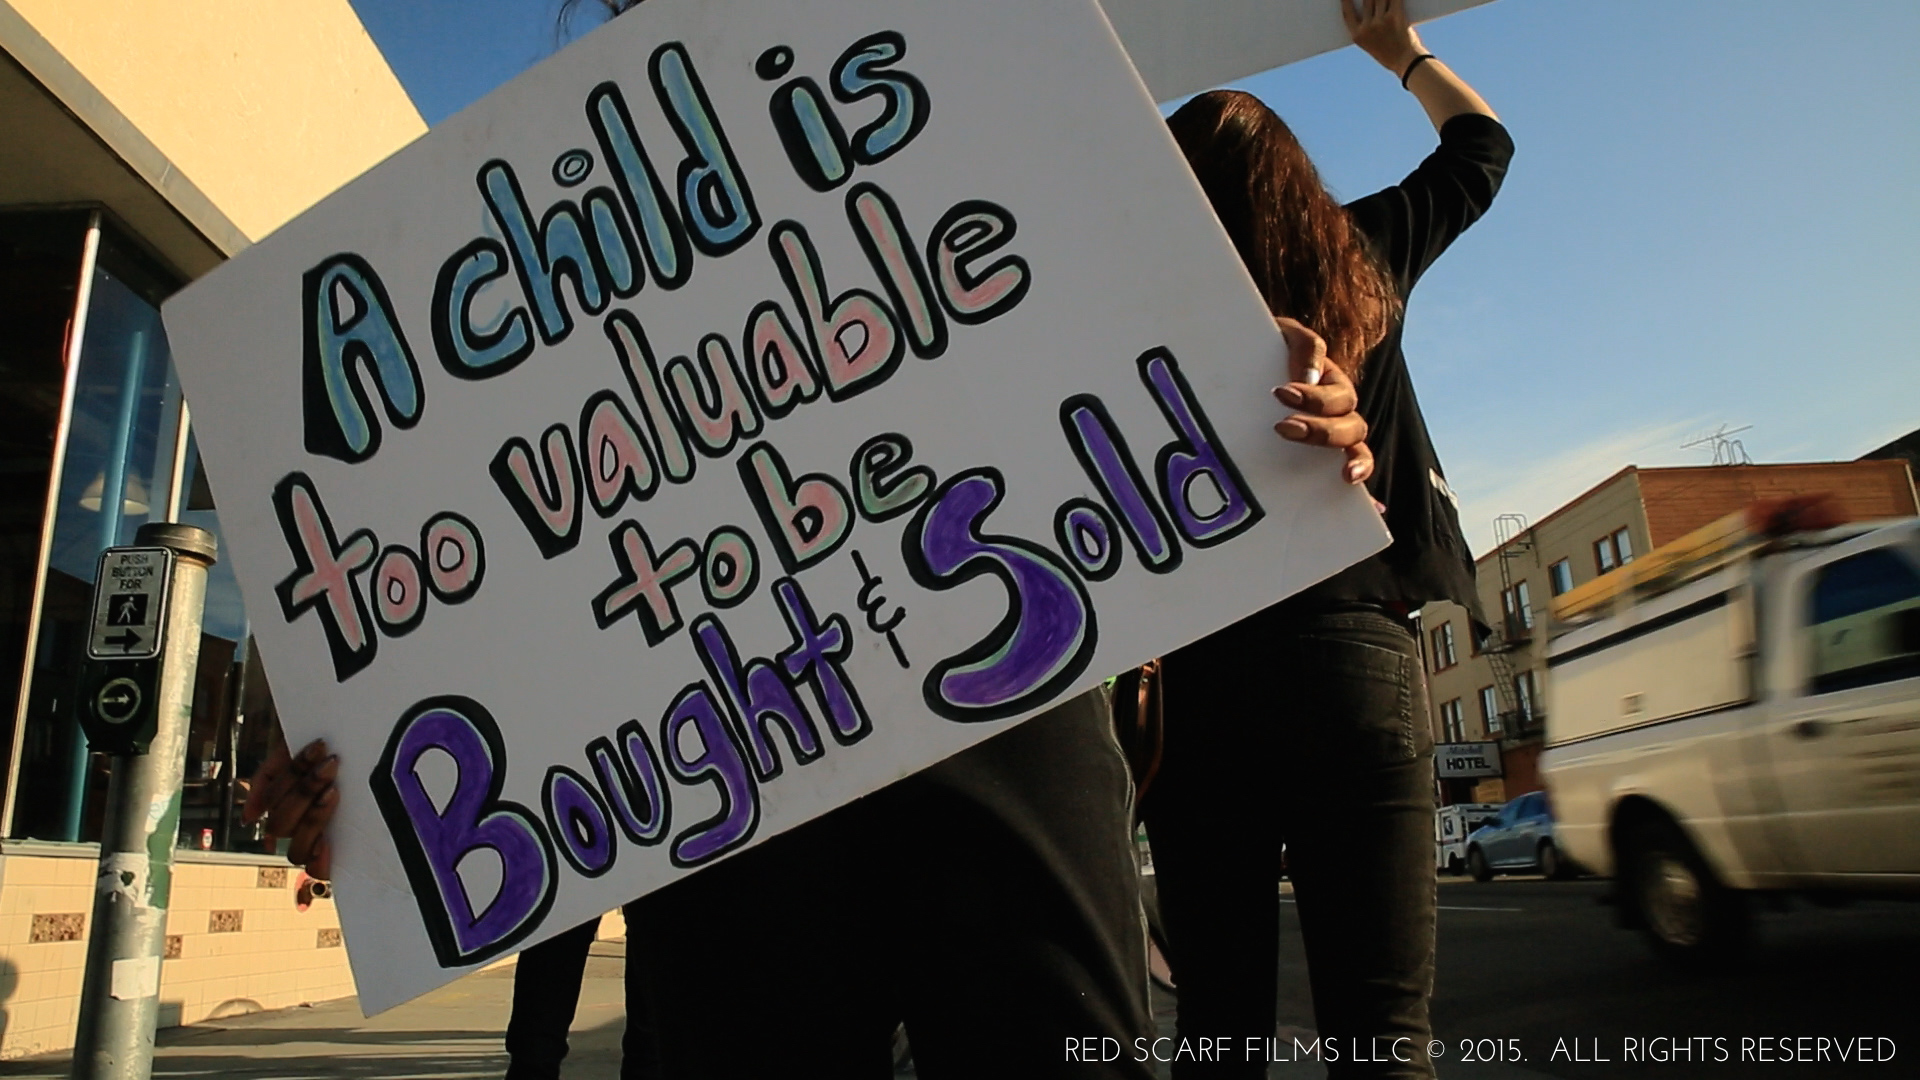 Child Too Valuable Sign.jpg